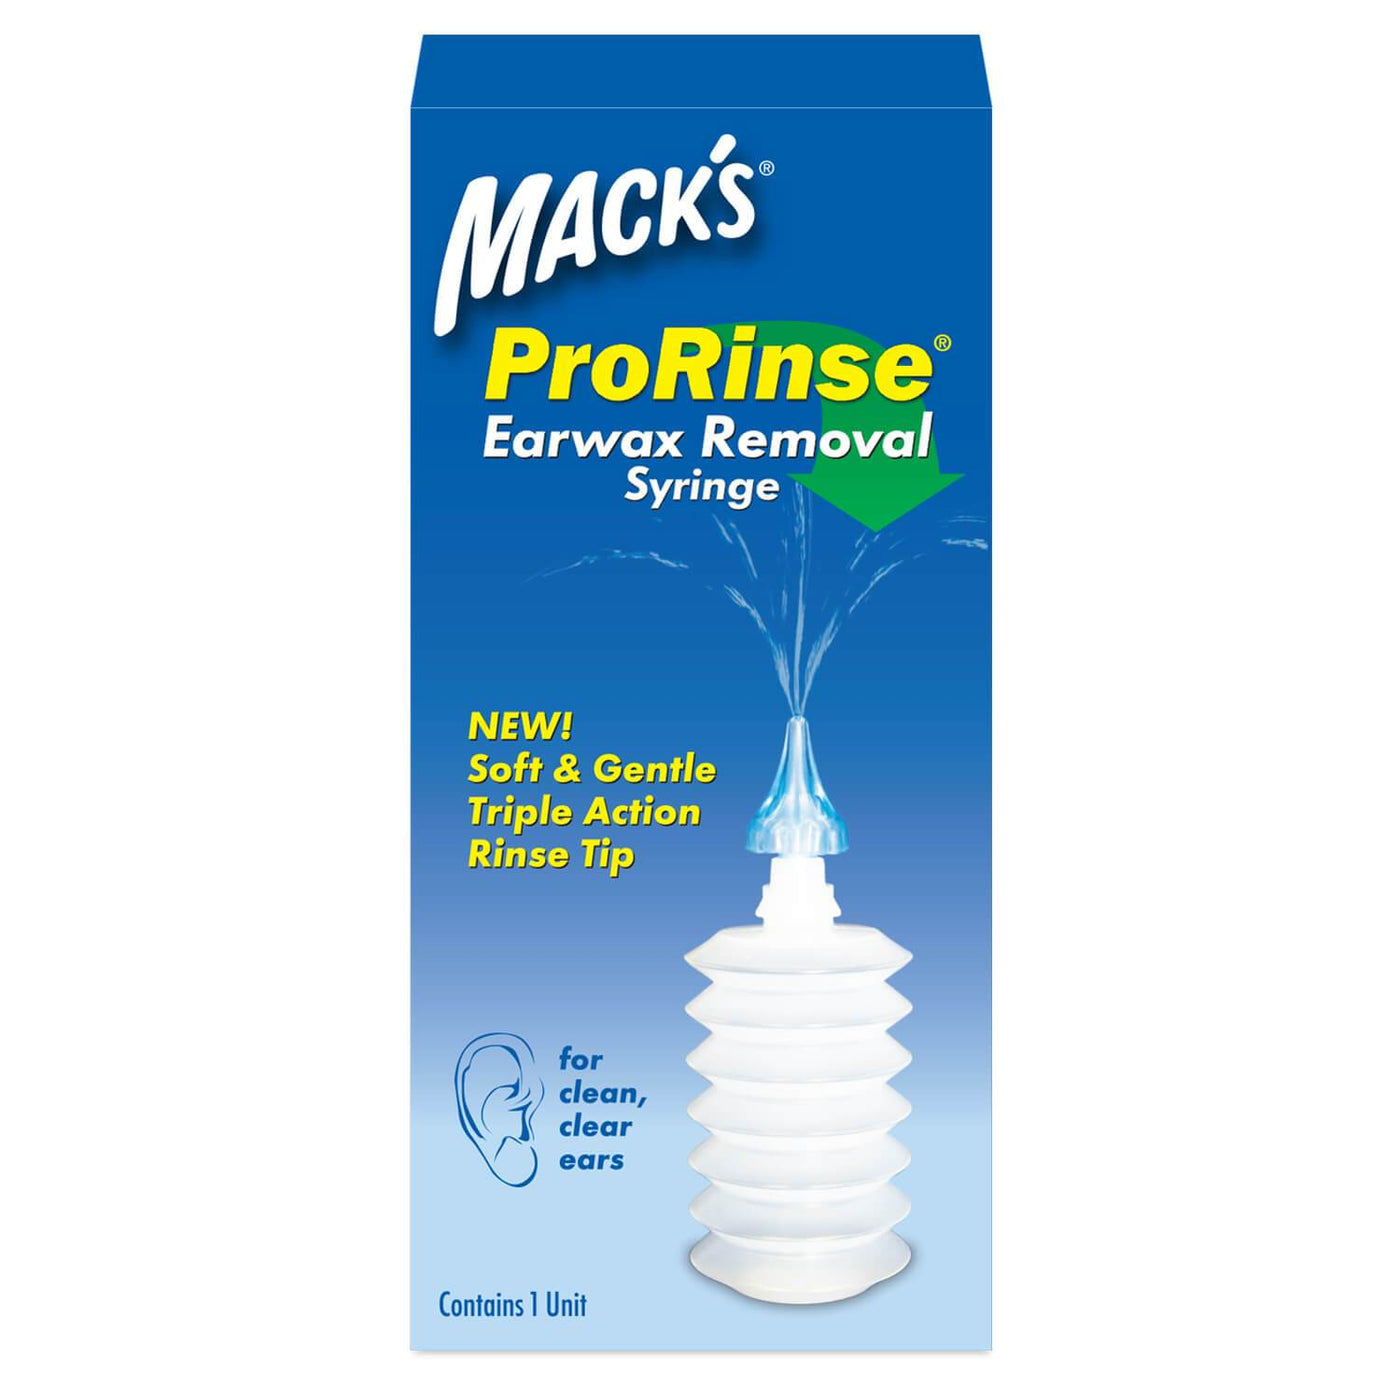 Macks ProRinse Earwax Removal Syringe